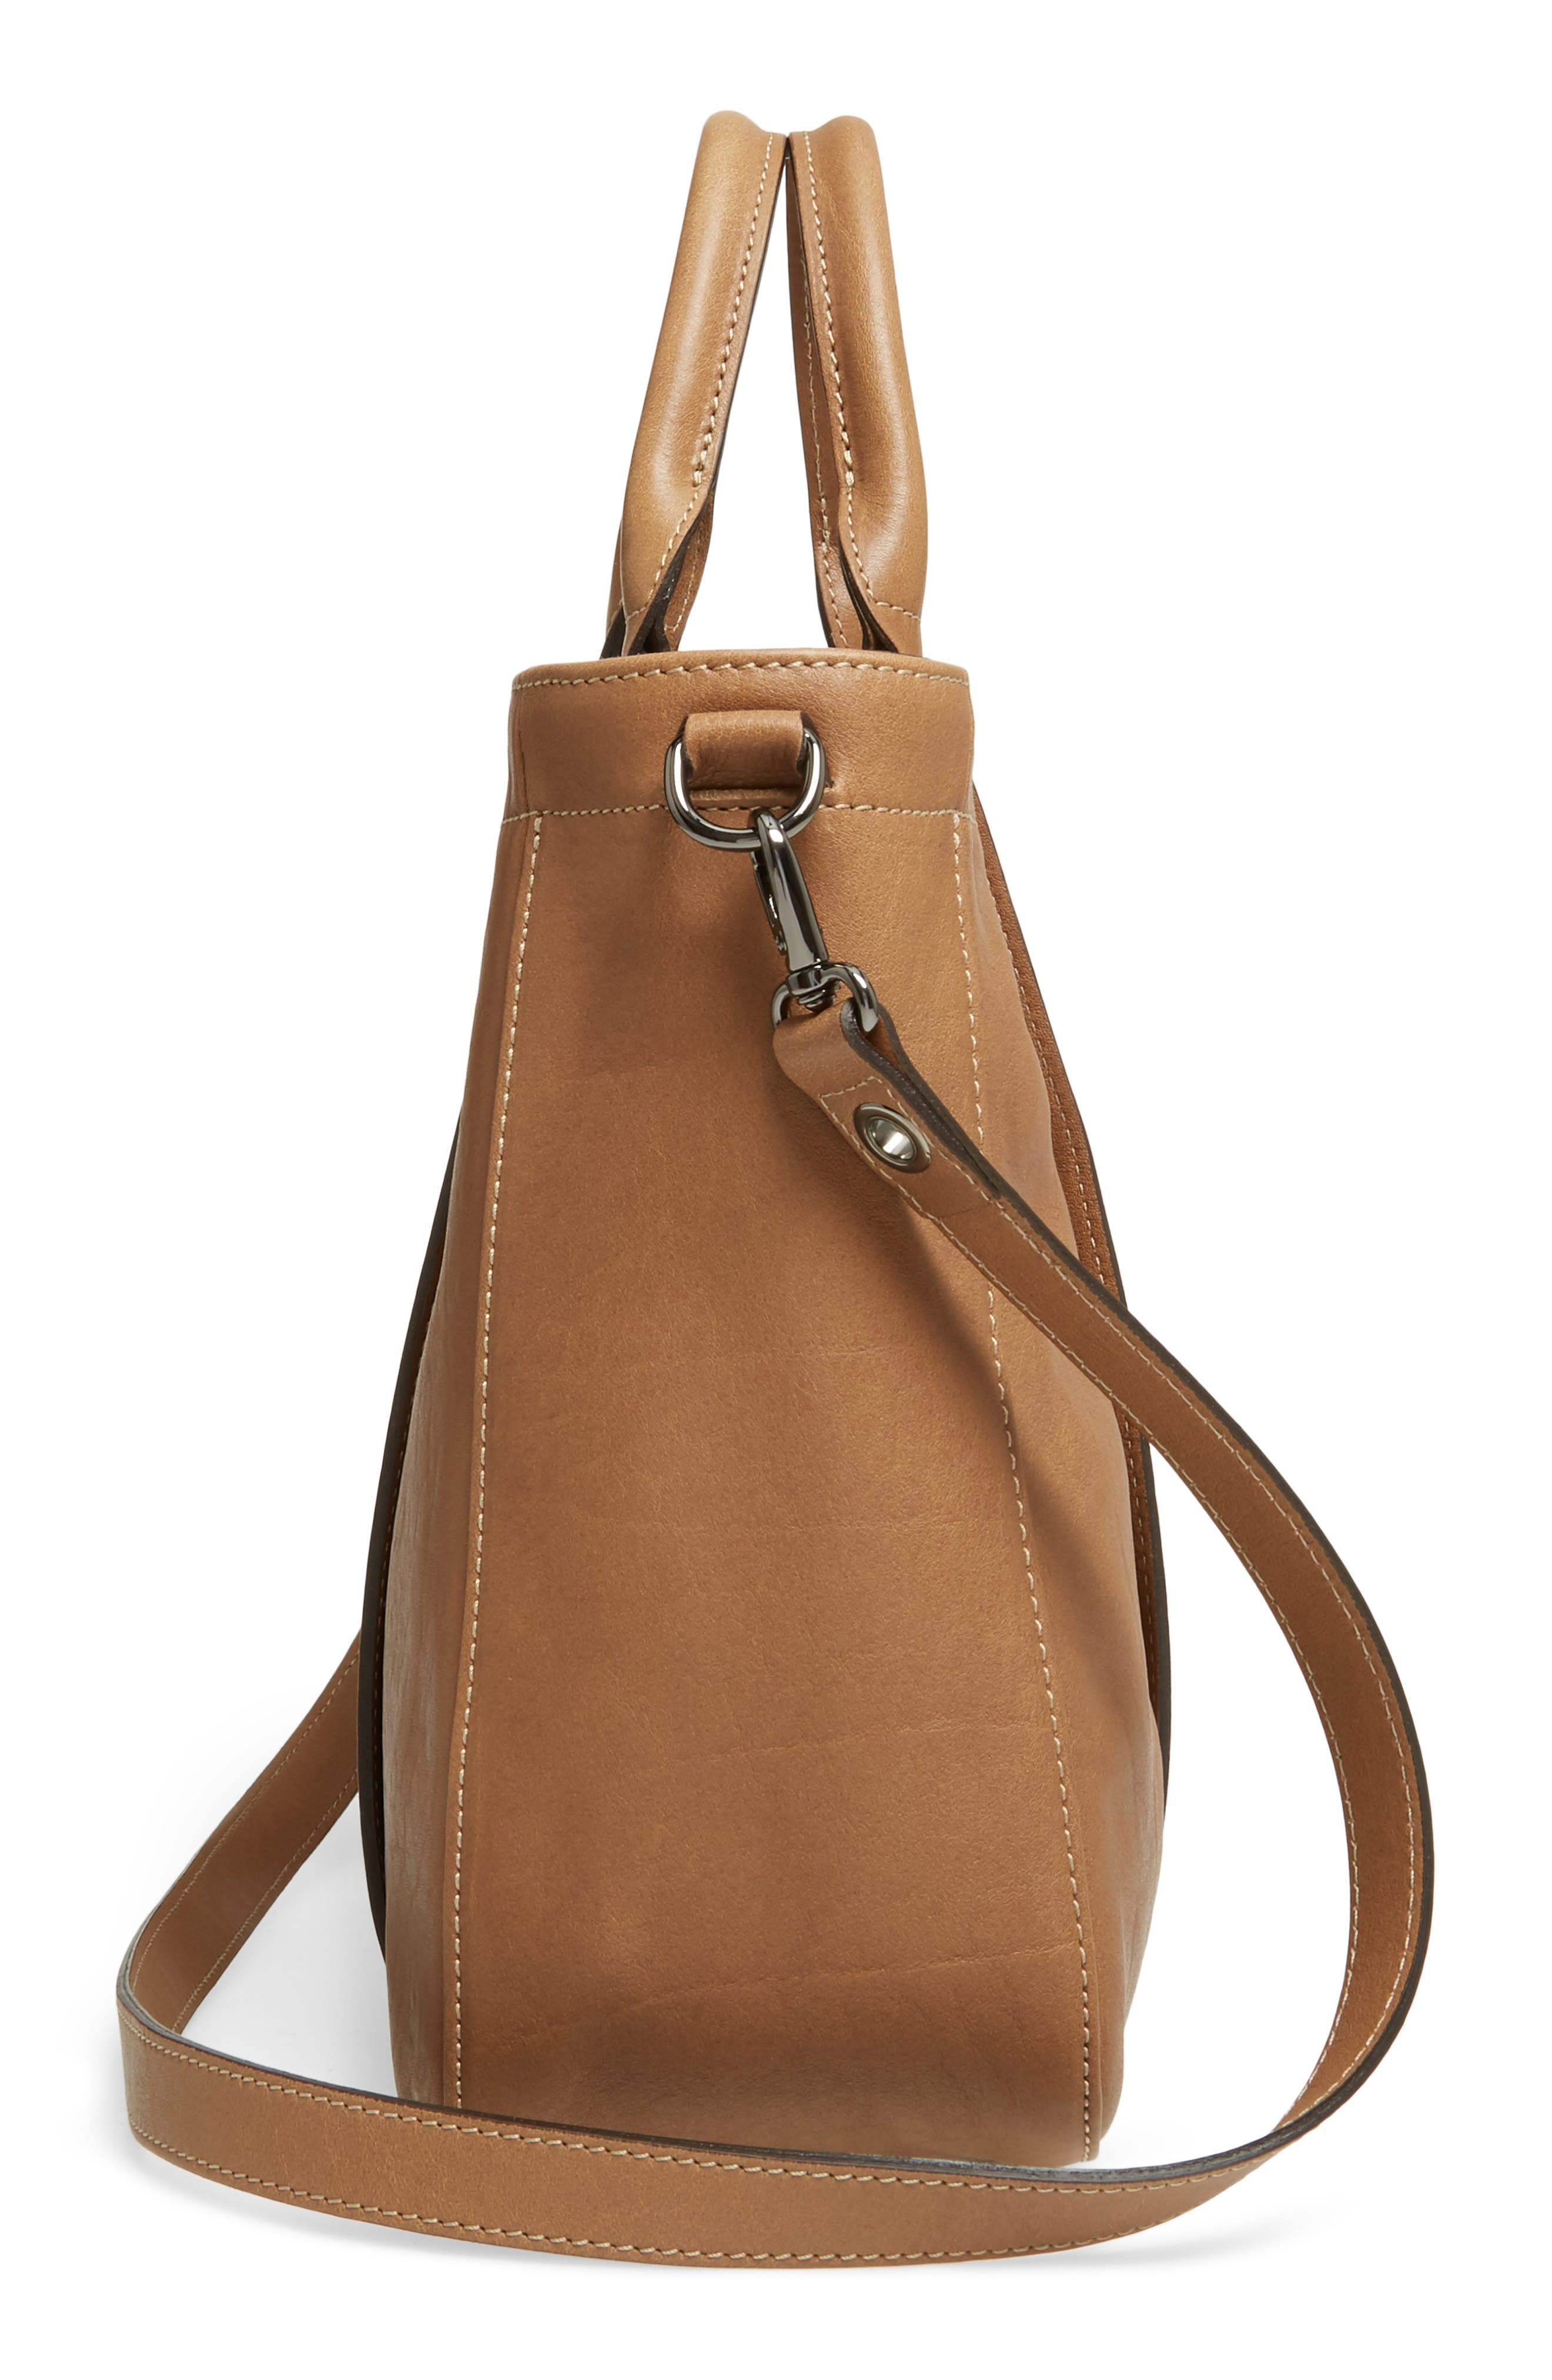 3D Leather Tote,                             Alternate thumbnail 5, color,                             250